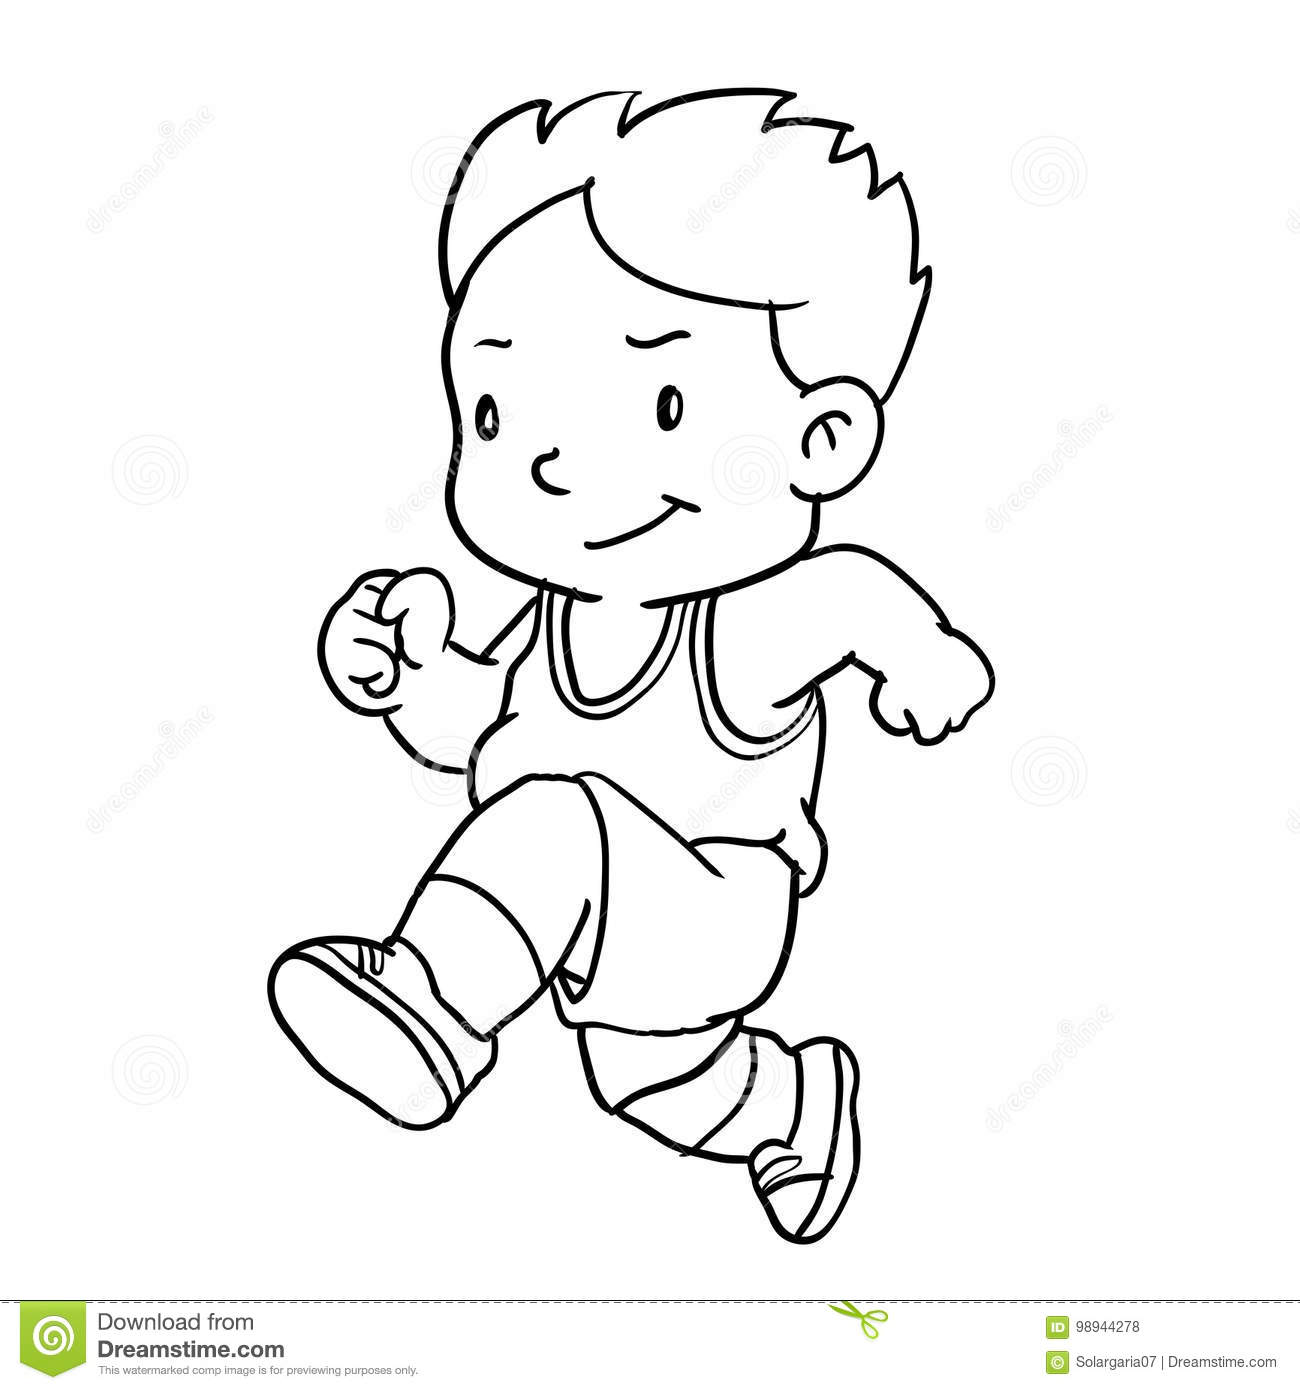 hight resolution of hand drawing of boy runnin isolated on white background black and white simple line vector illustration for coloring book line drawn vector